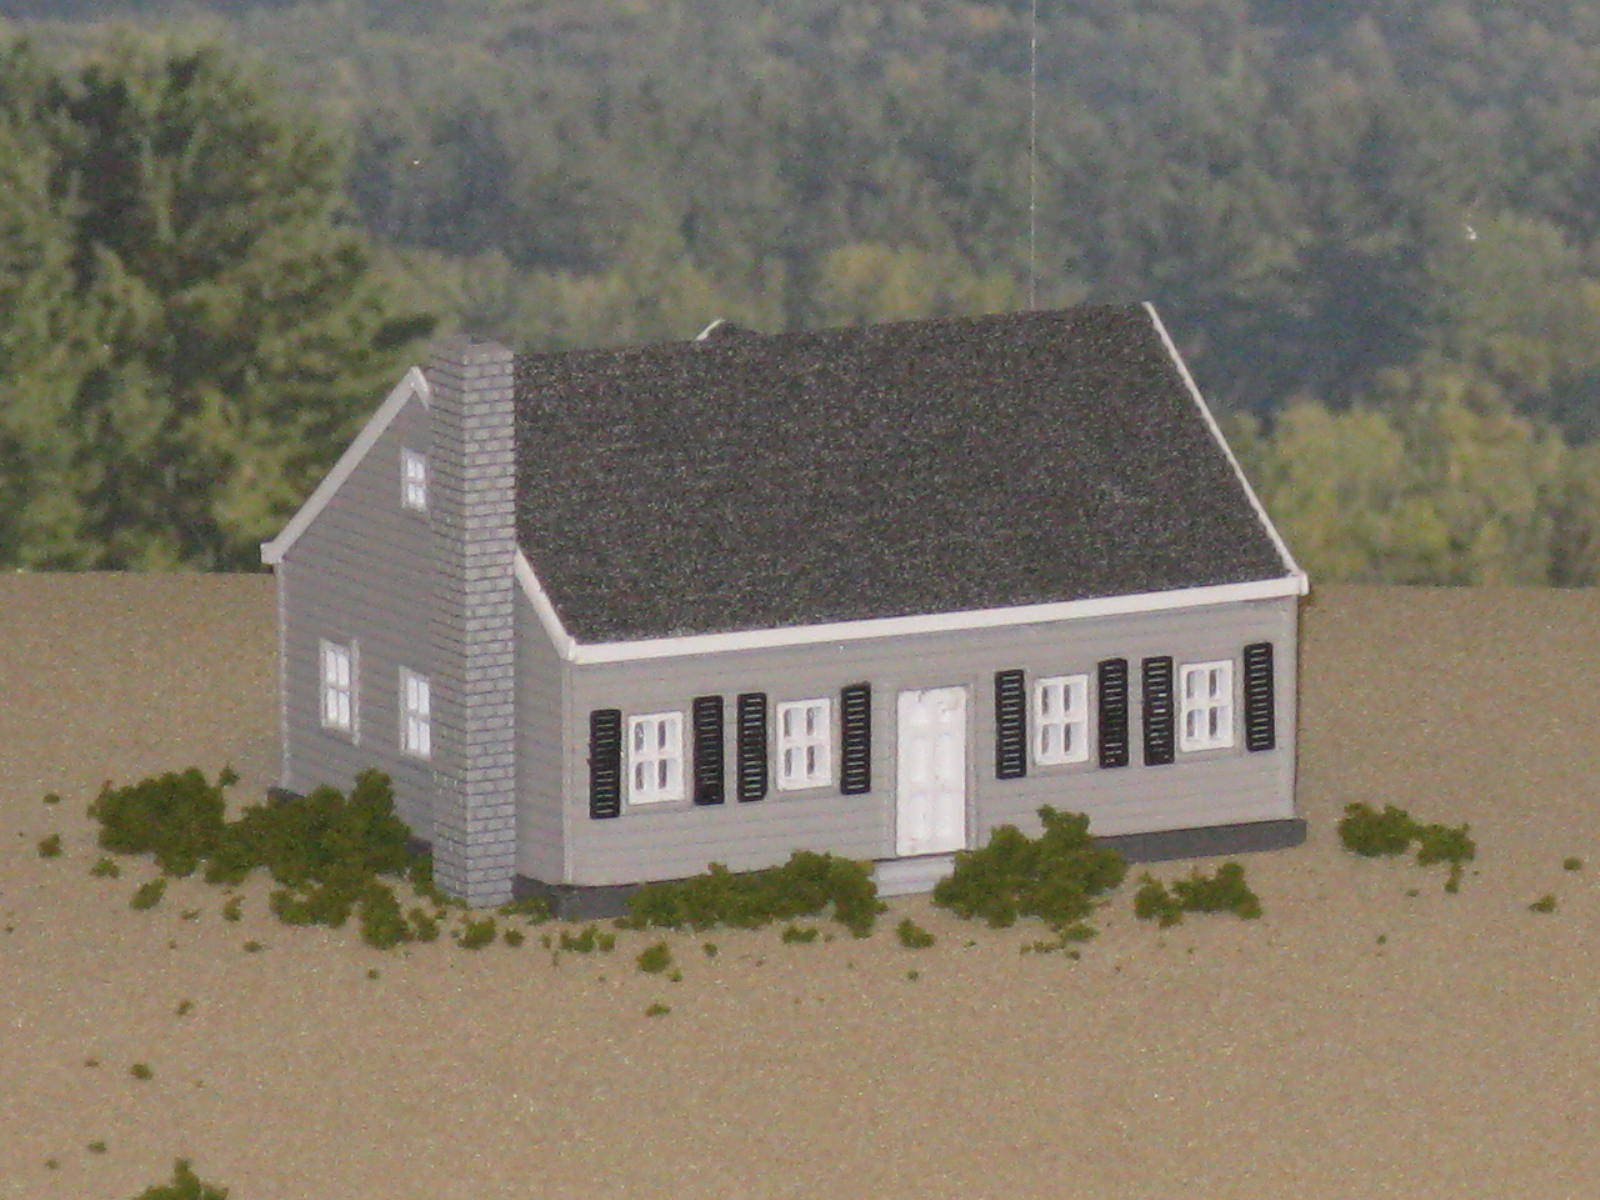 The_Cape_Cod_1.JPG Download free STL file HO Scale The Cape Cod • 3D printer template, kabrumble